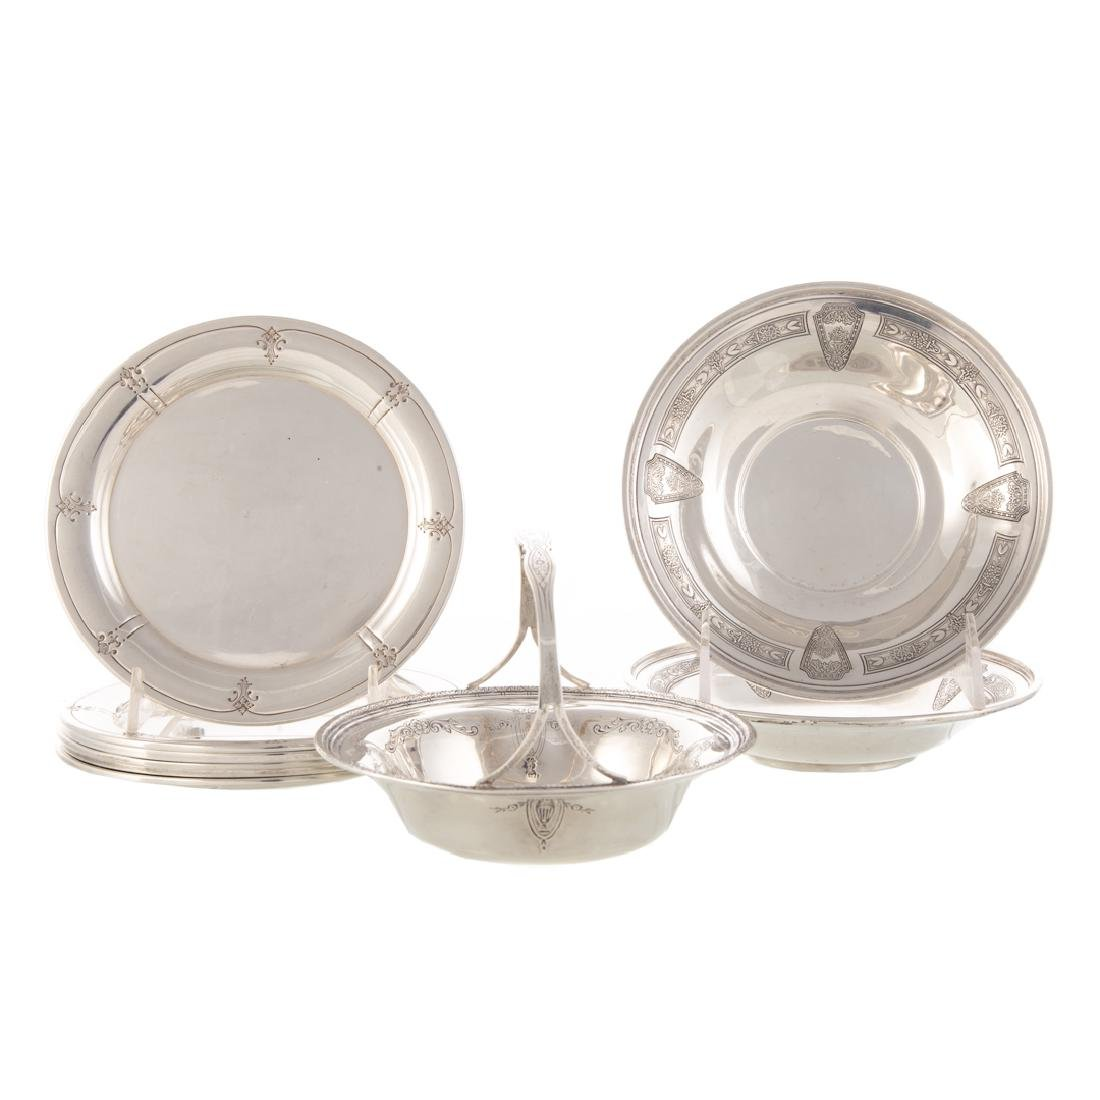 A collection of sterling silver tableware